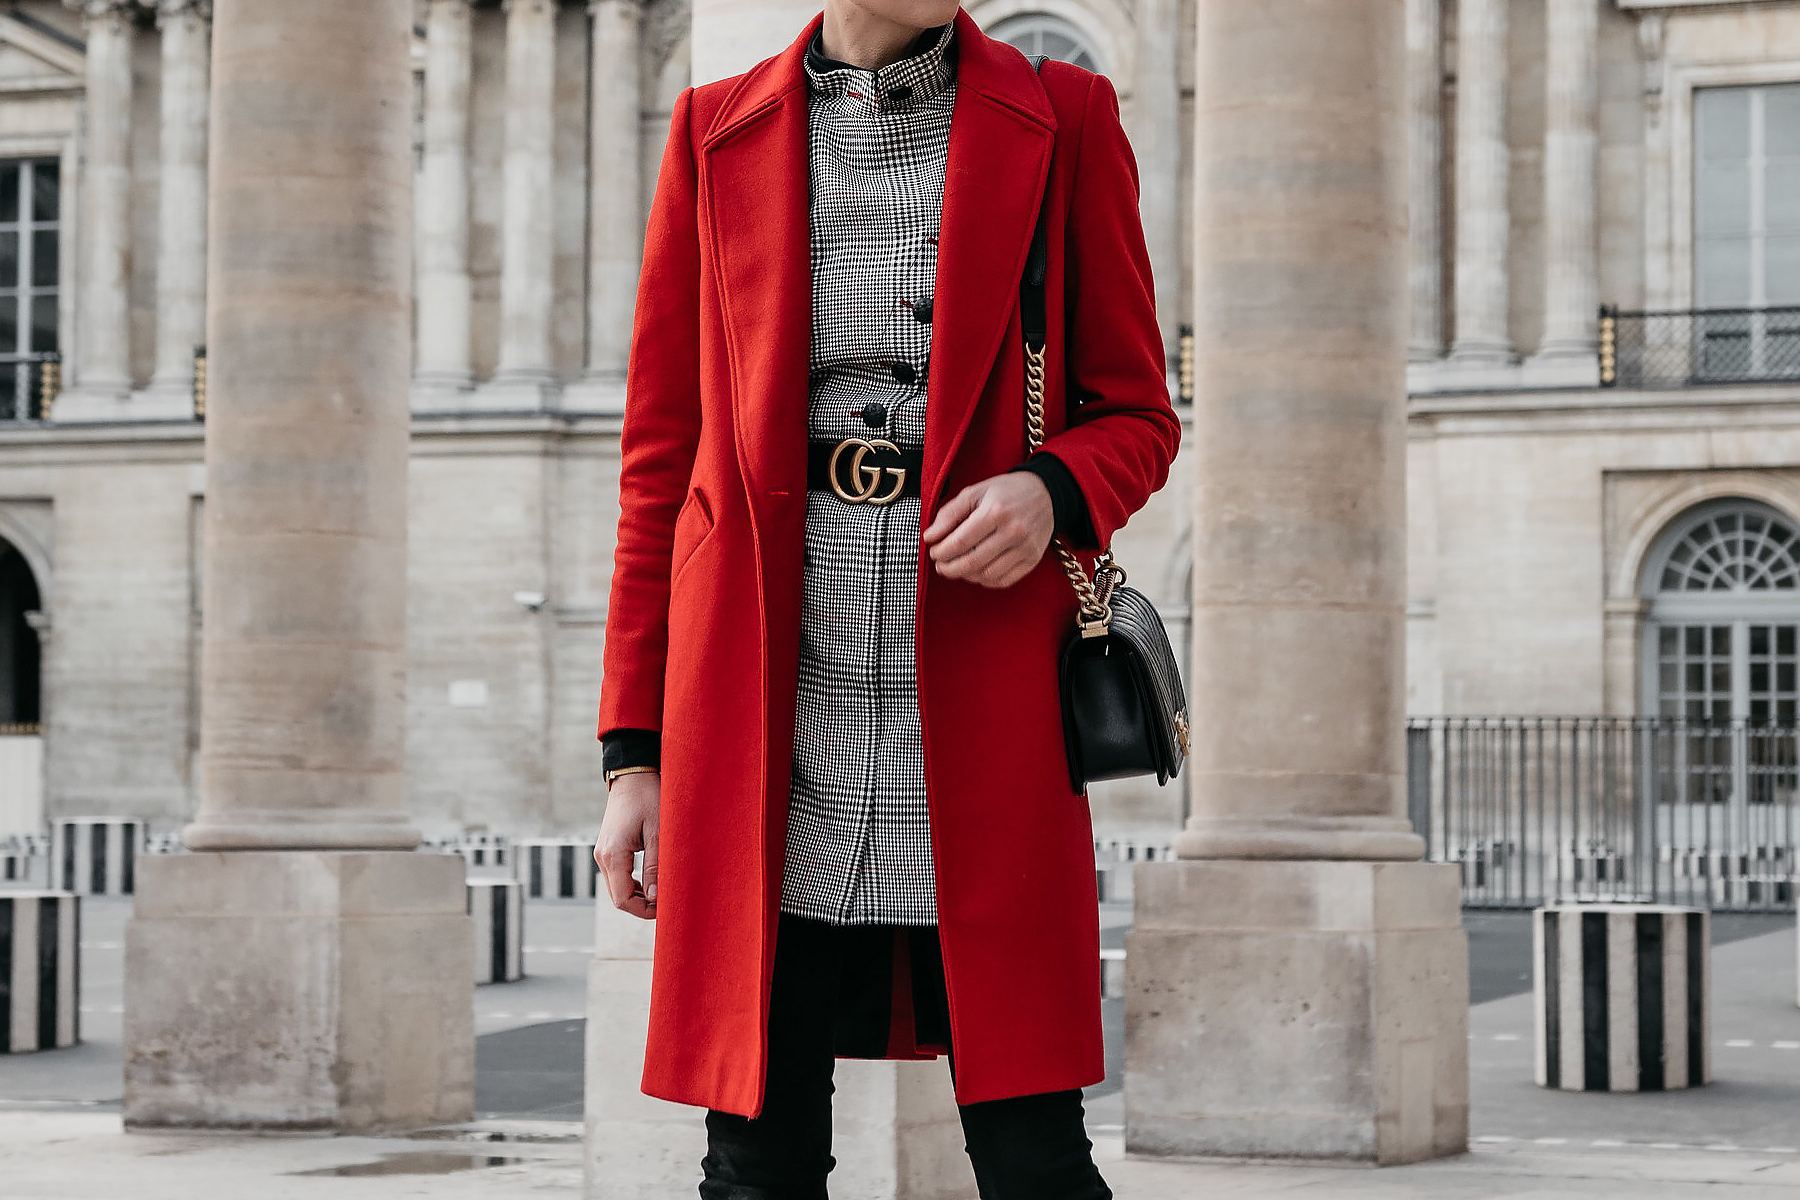 Red Wool Coat Plaid Dress Gucci Marmont Belt Black Jeans Chanel Black Gold Boy Bag Paris Palais Royal Fashion Jackson Dallas Blogger Fashion Blogger Street Style